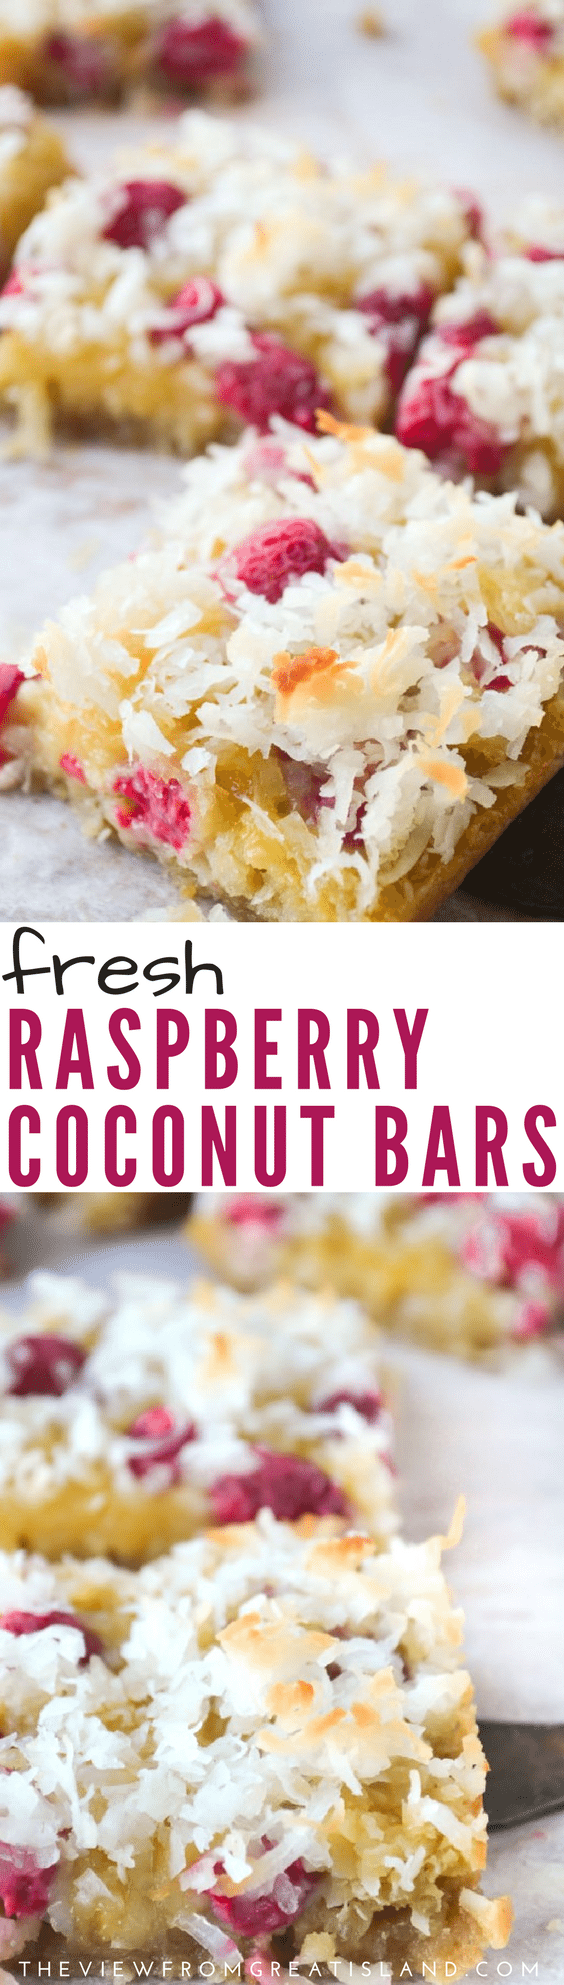 These Fresh Raspberry Coconut Bars are ooey, gooey, and delicious! Imagine your favorite coconut bar brightened up with juicy fresh raspberries ~ yum! #raspberrybars #coconutbars #coconut #raspberries #dessert #breakfast #snack #dessertbars